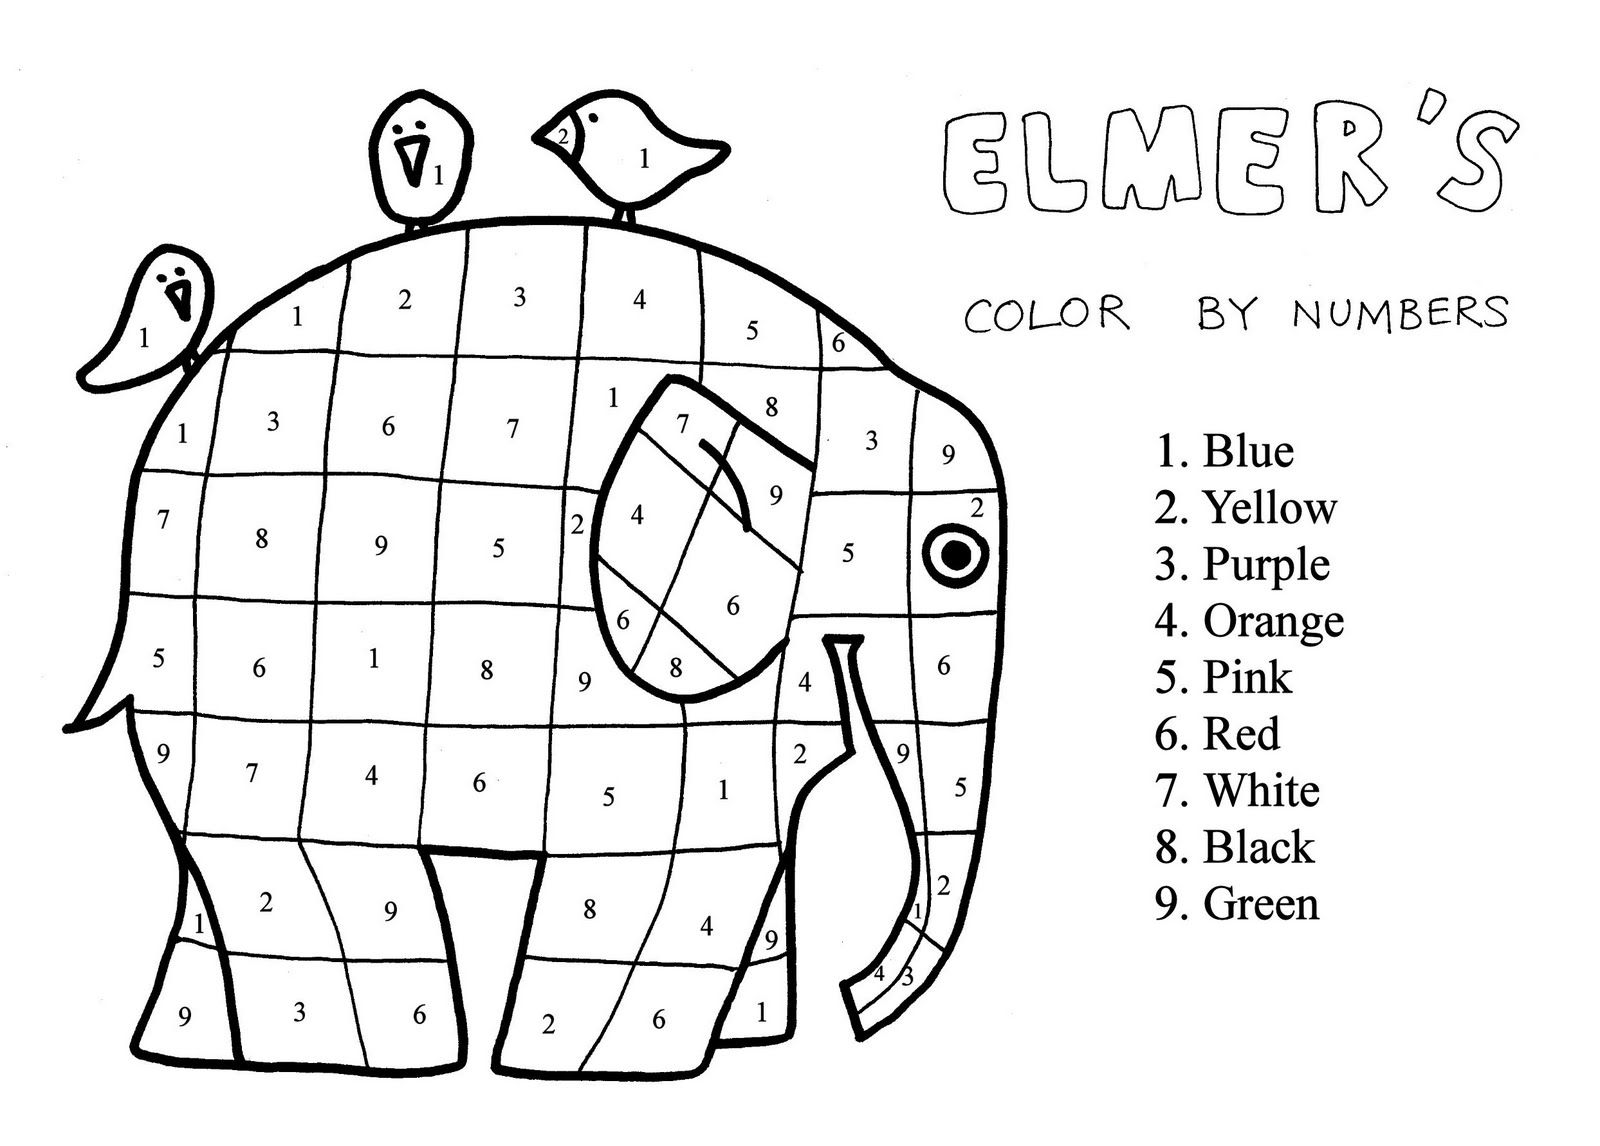 2nd grade elmer the patchwork elephant coloring page extra project color matching - Elephant Pictures To Color